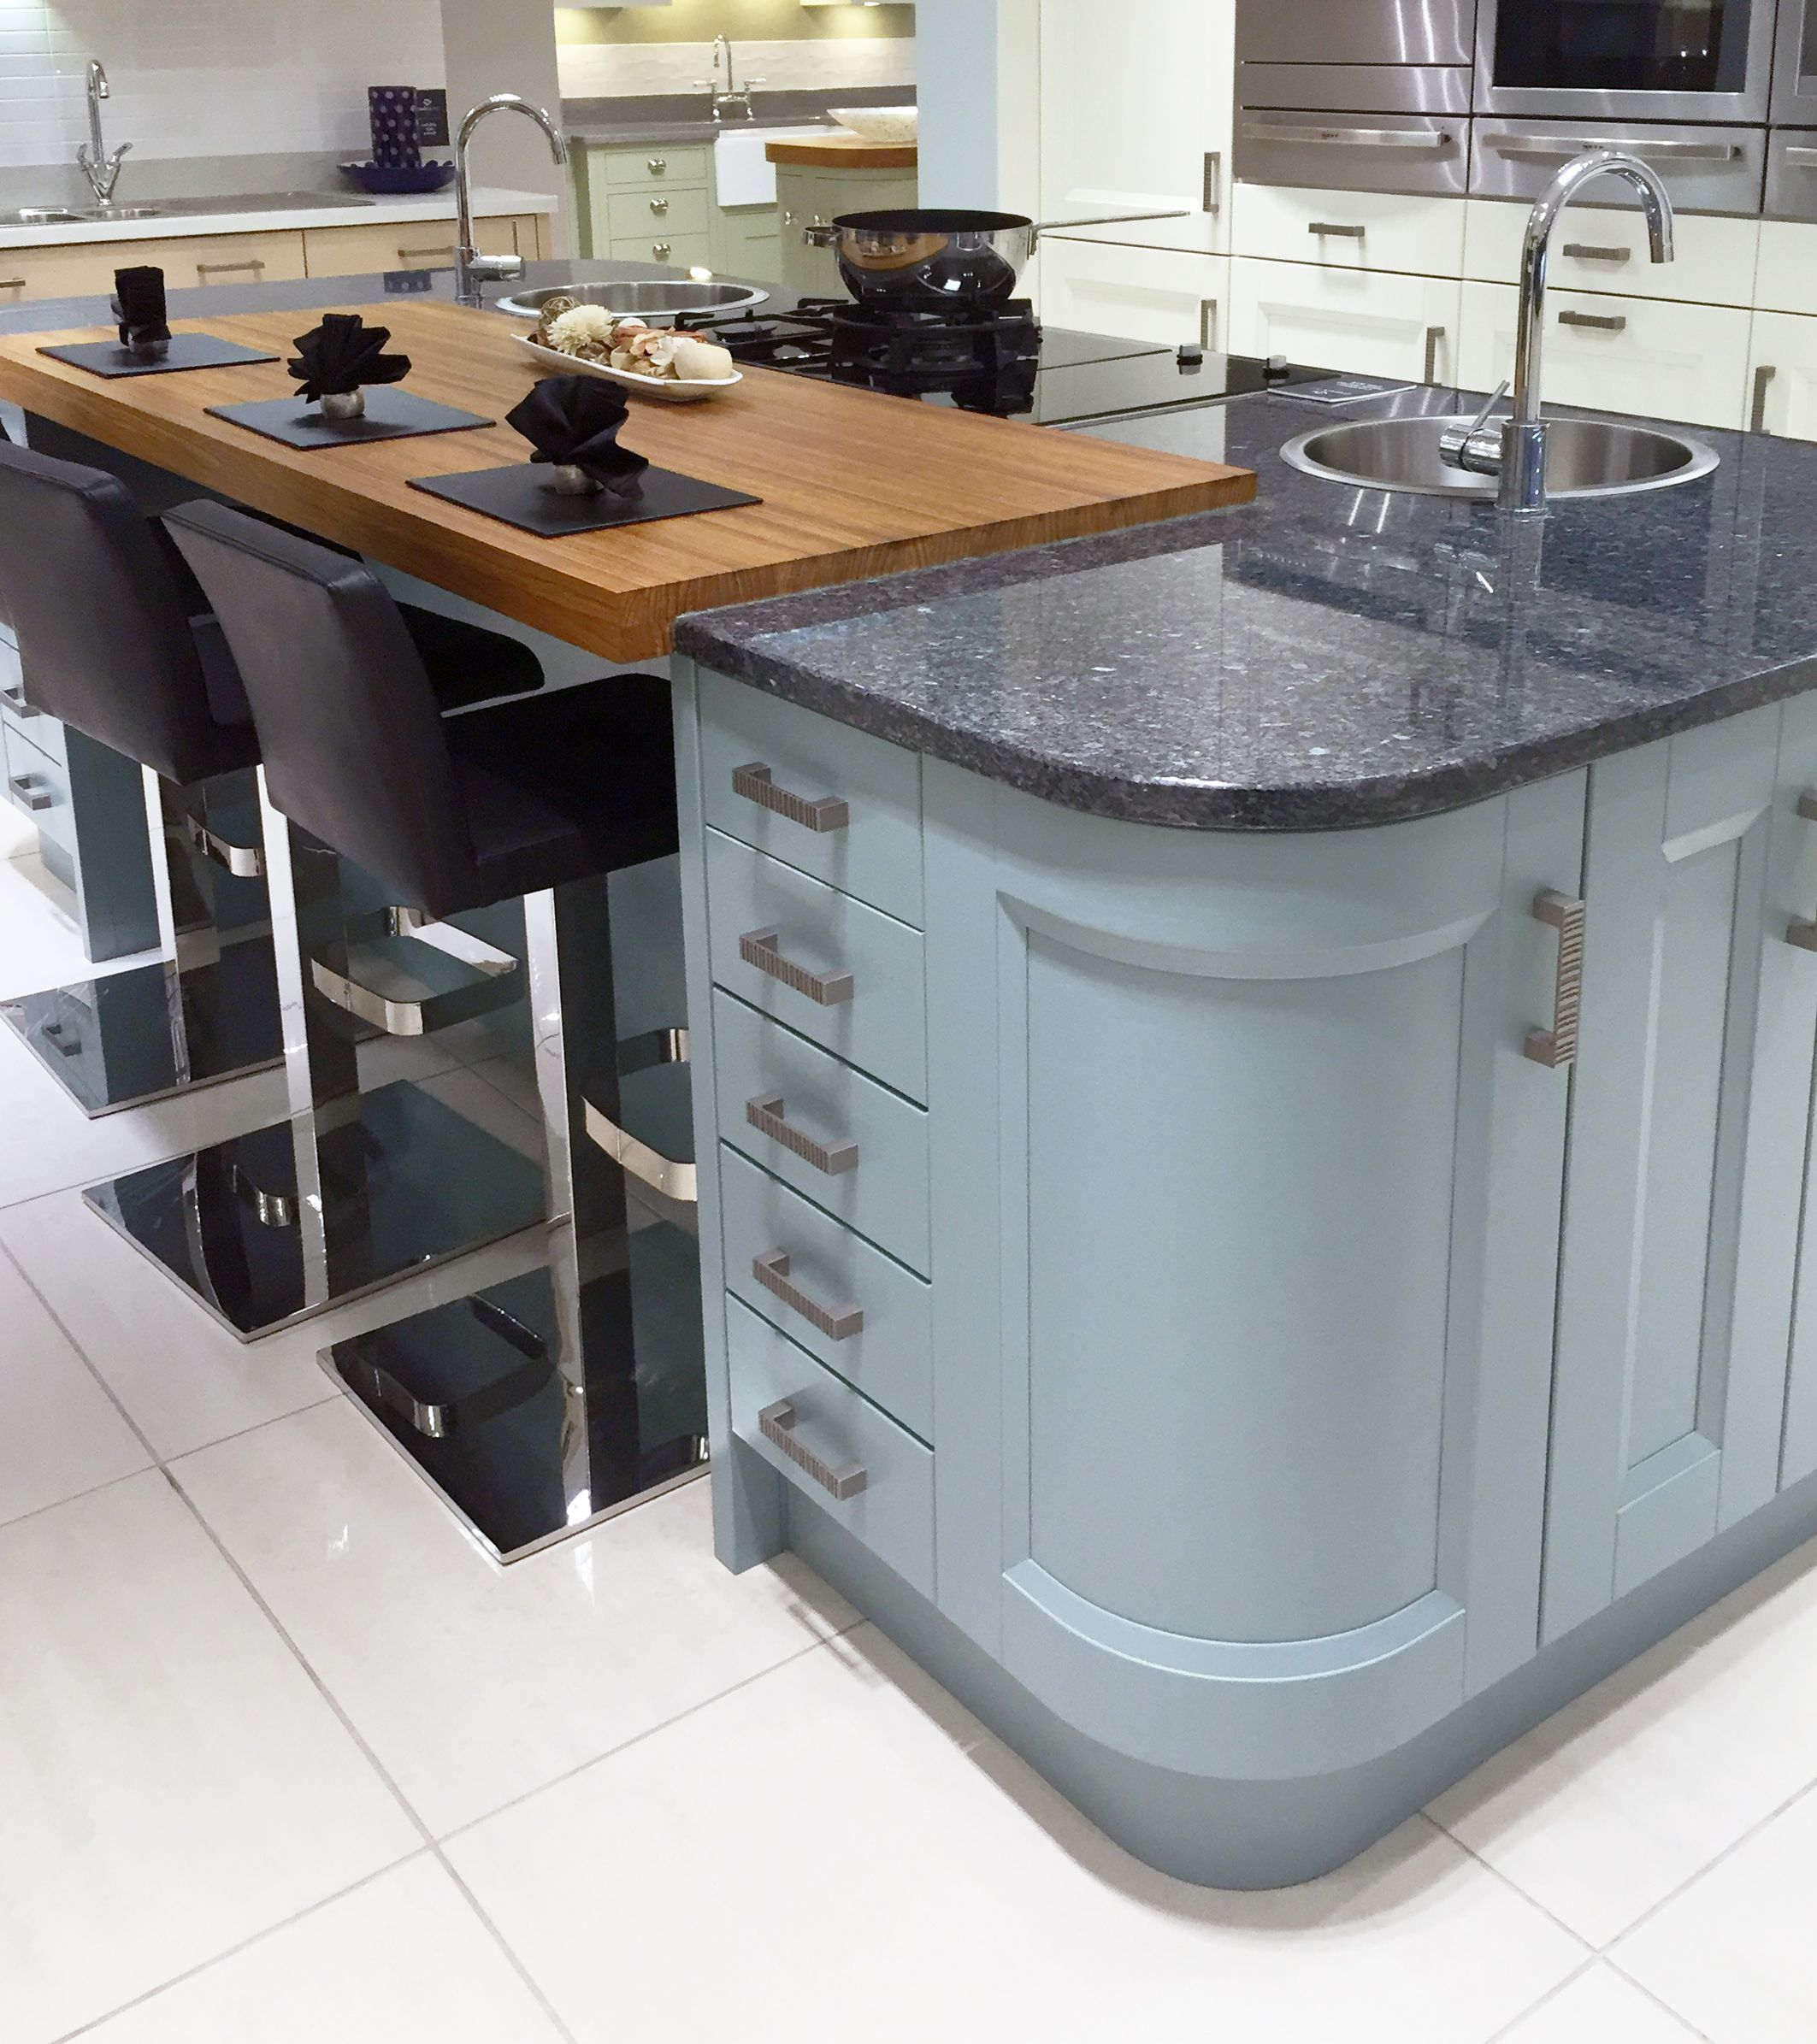 Contemporary kitchen island design in blue, with curved units, inset ...